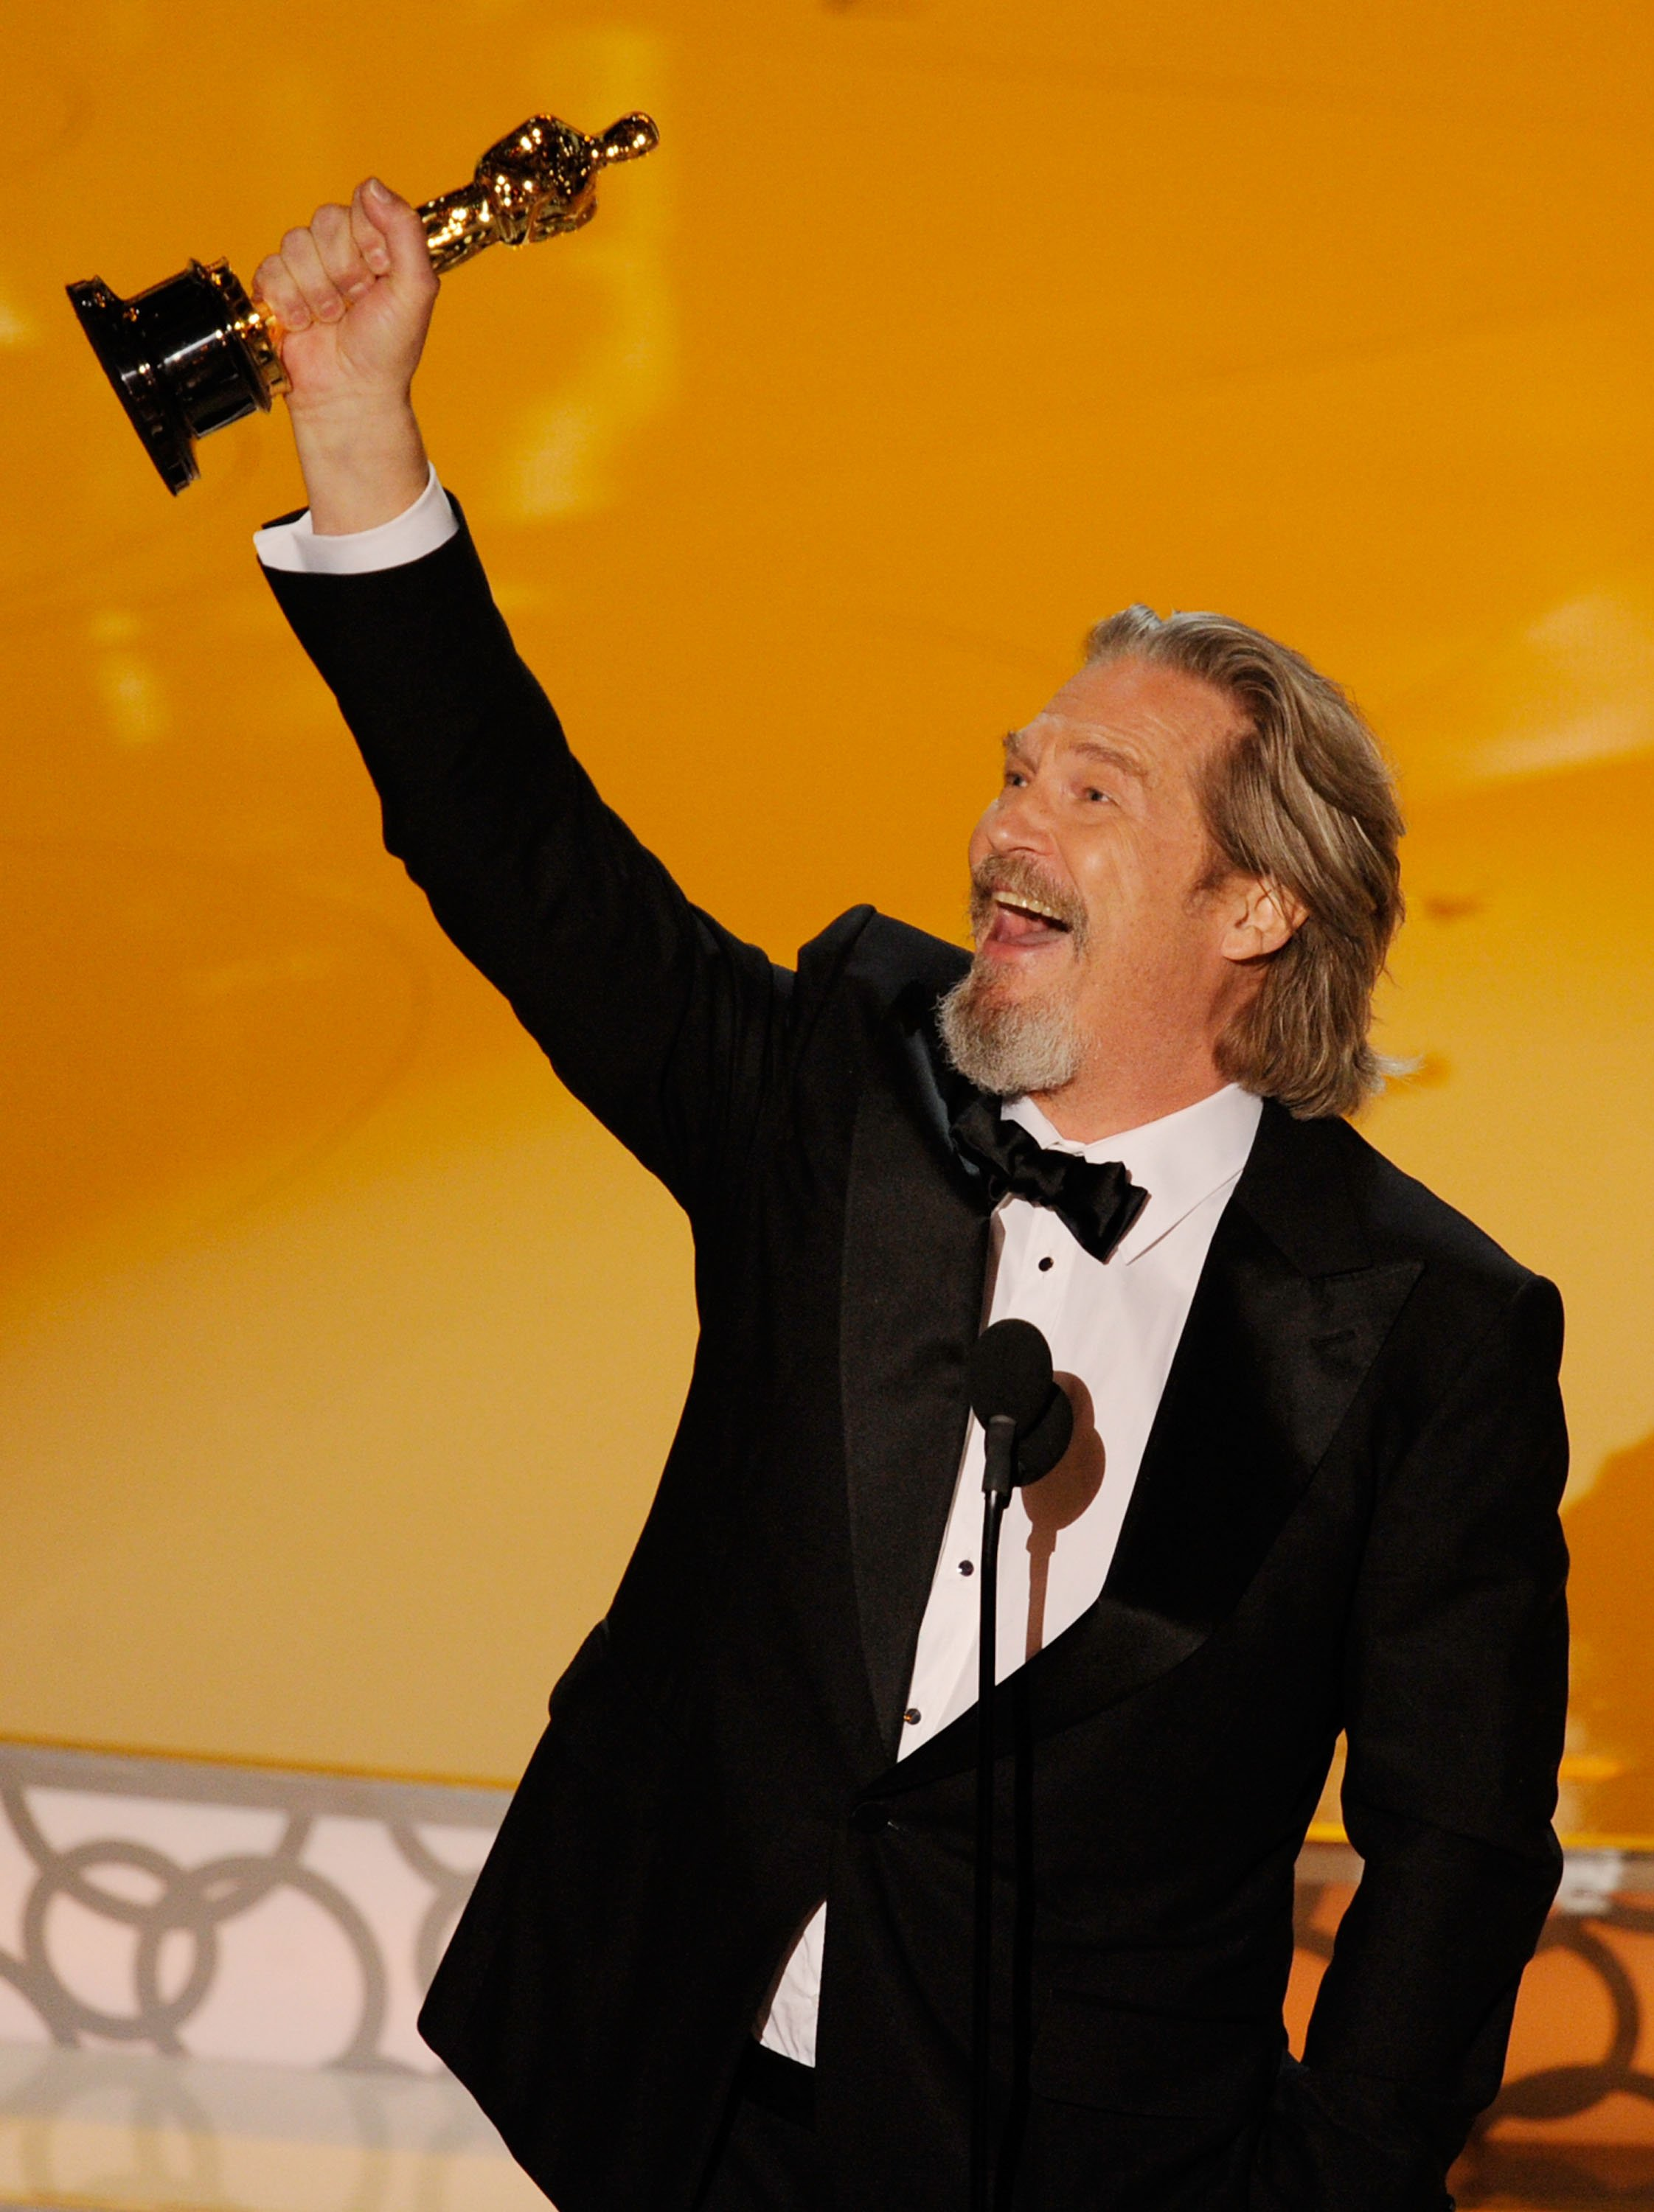 """Jeff Bridges accepts Best Actor award for """"Crazy Heart"""" during the 82nd Annual Academy Awards on March 7, 2010 